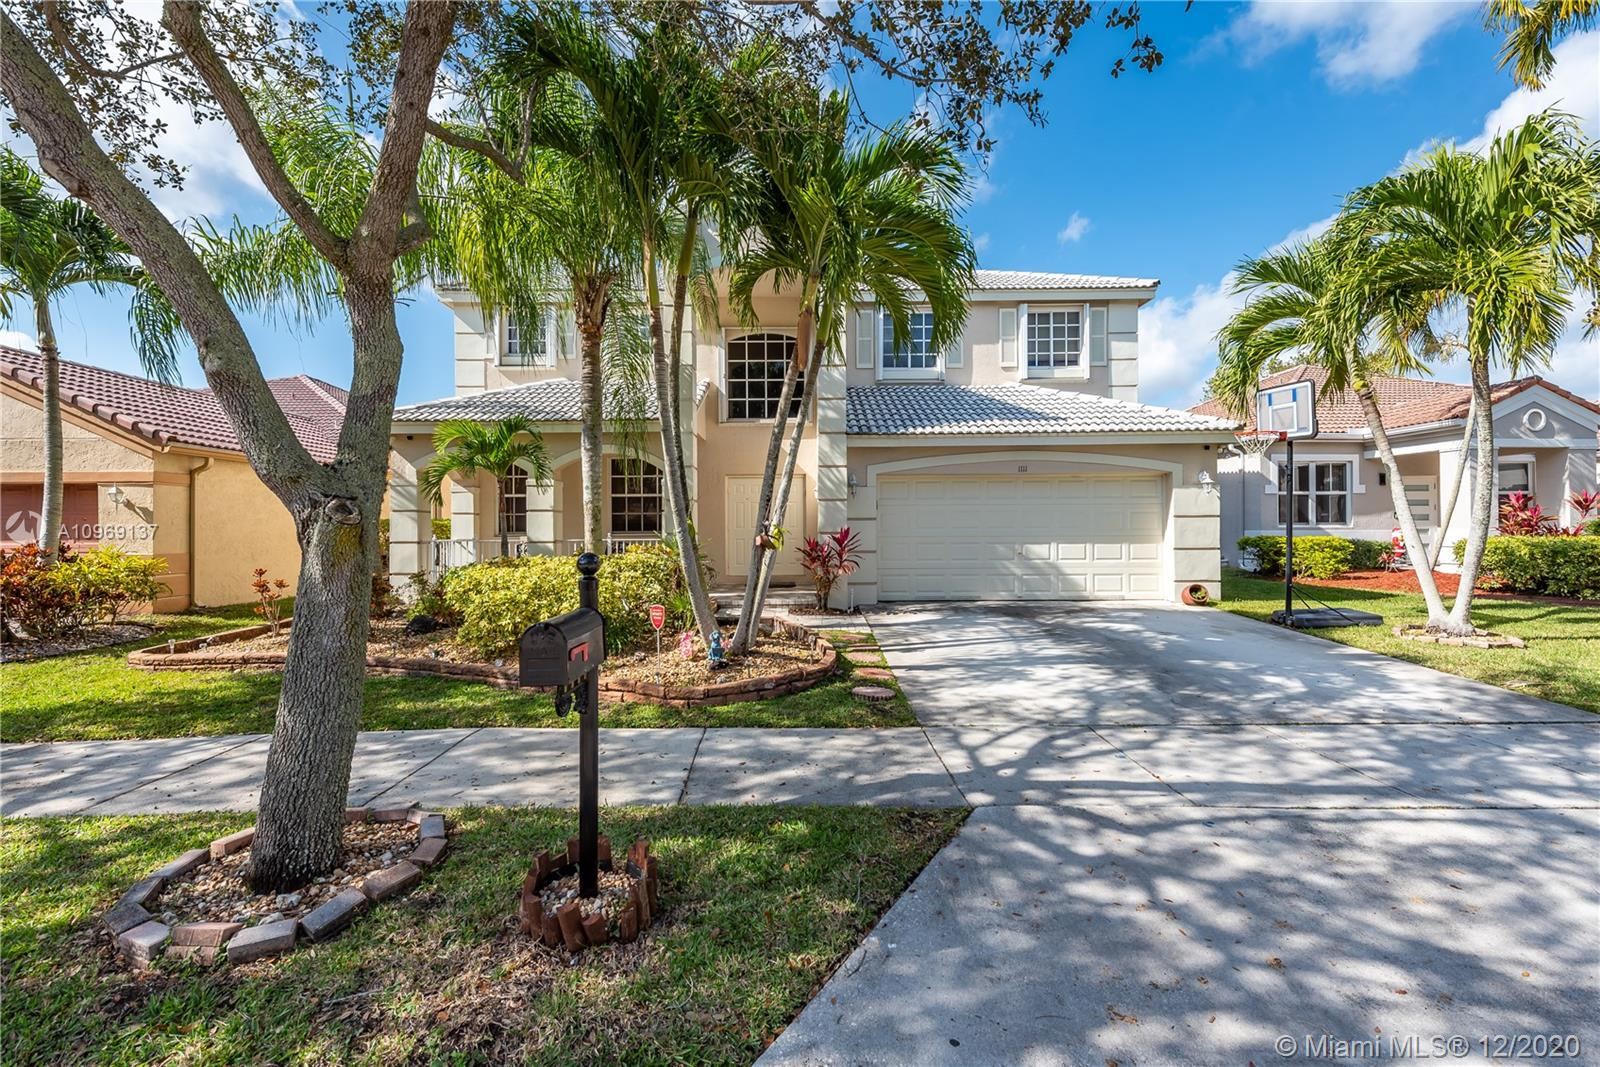 Weston - 1111 Birchwood Rd, Weston, FL 33327